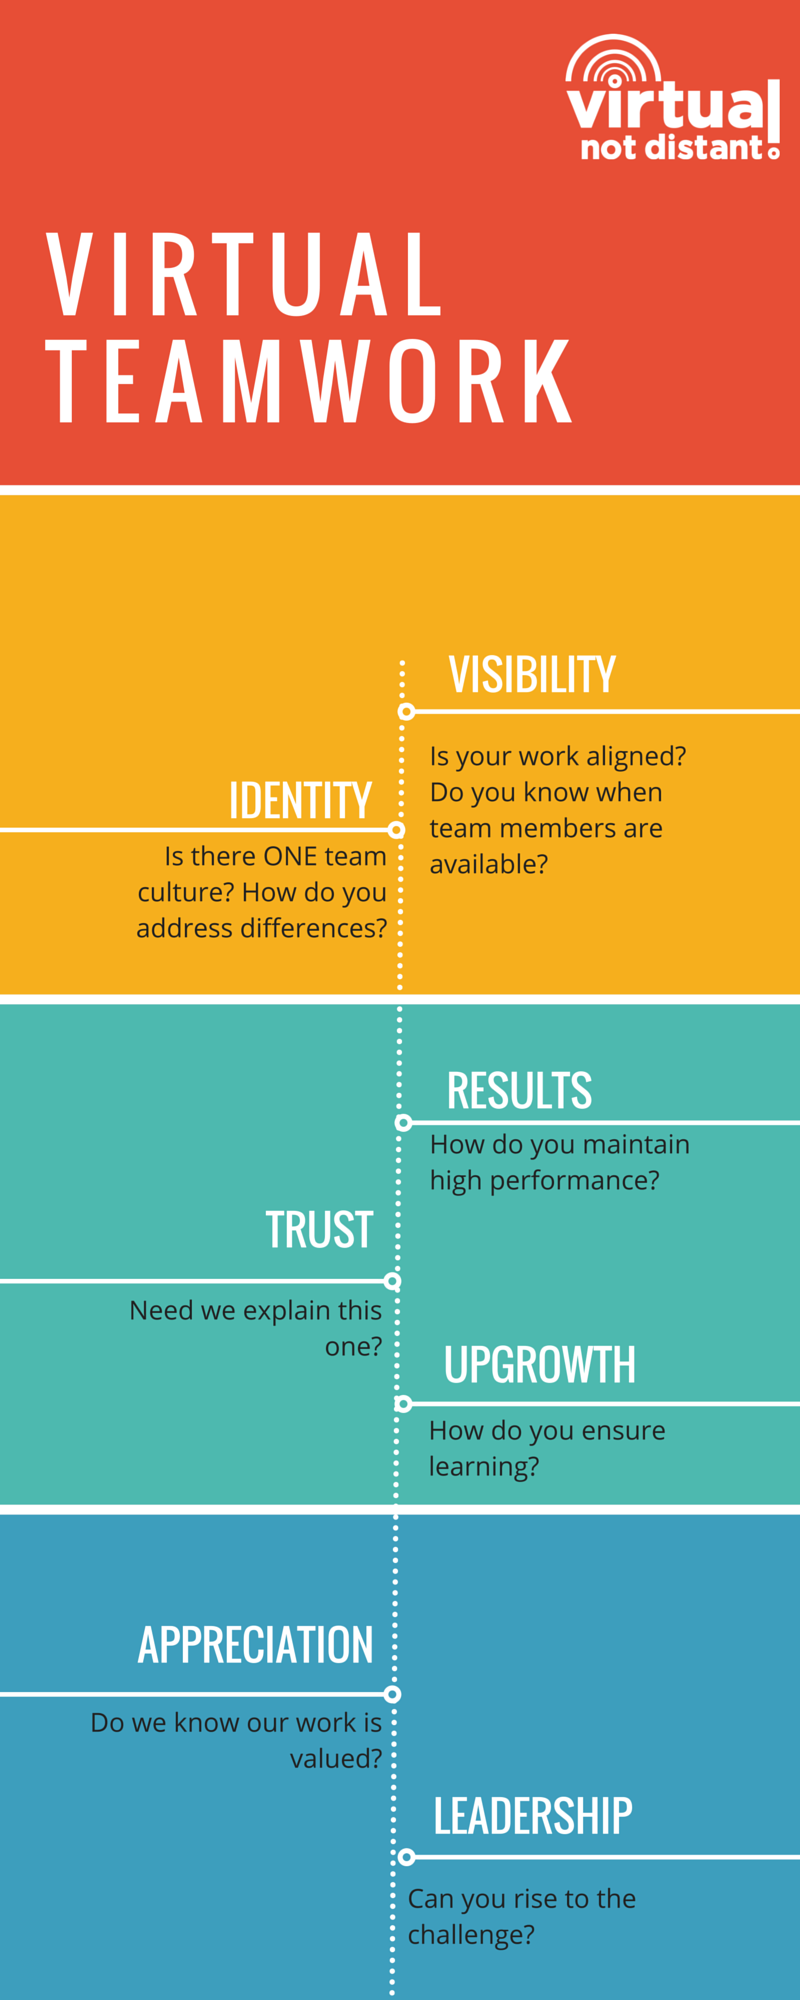 The seven areas of virtual teamwork. (Click on image to expand.) #virtualteams #management https://t.co/82zuVOr4lE